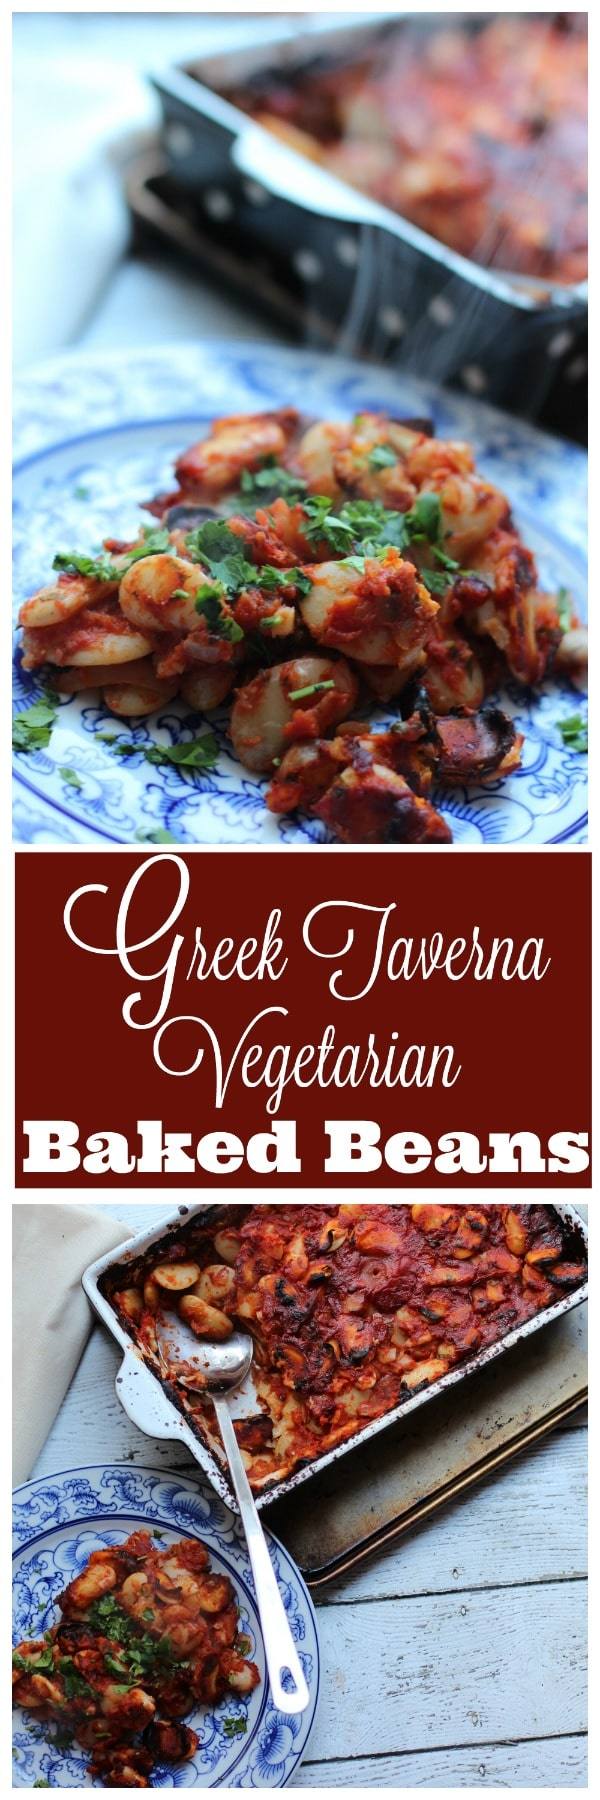 This is the ultimate one pan casserole!!! A filling vegetarian meal filled with giant baked beans and some classic Greek flavors. The perfect vegetarian entree or side dish to any meal.